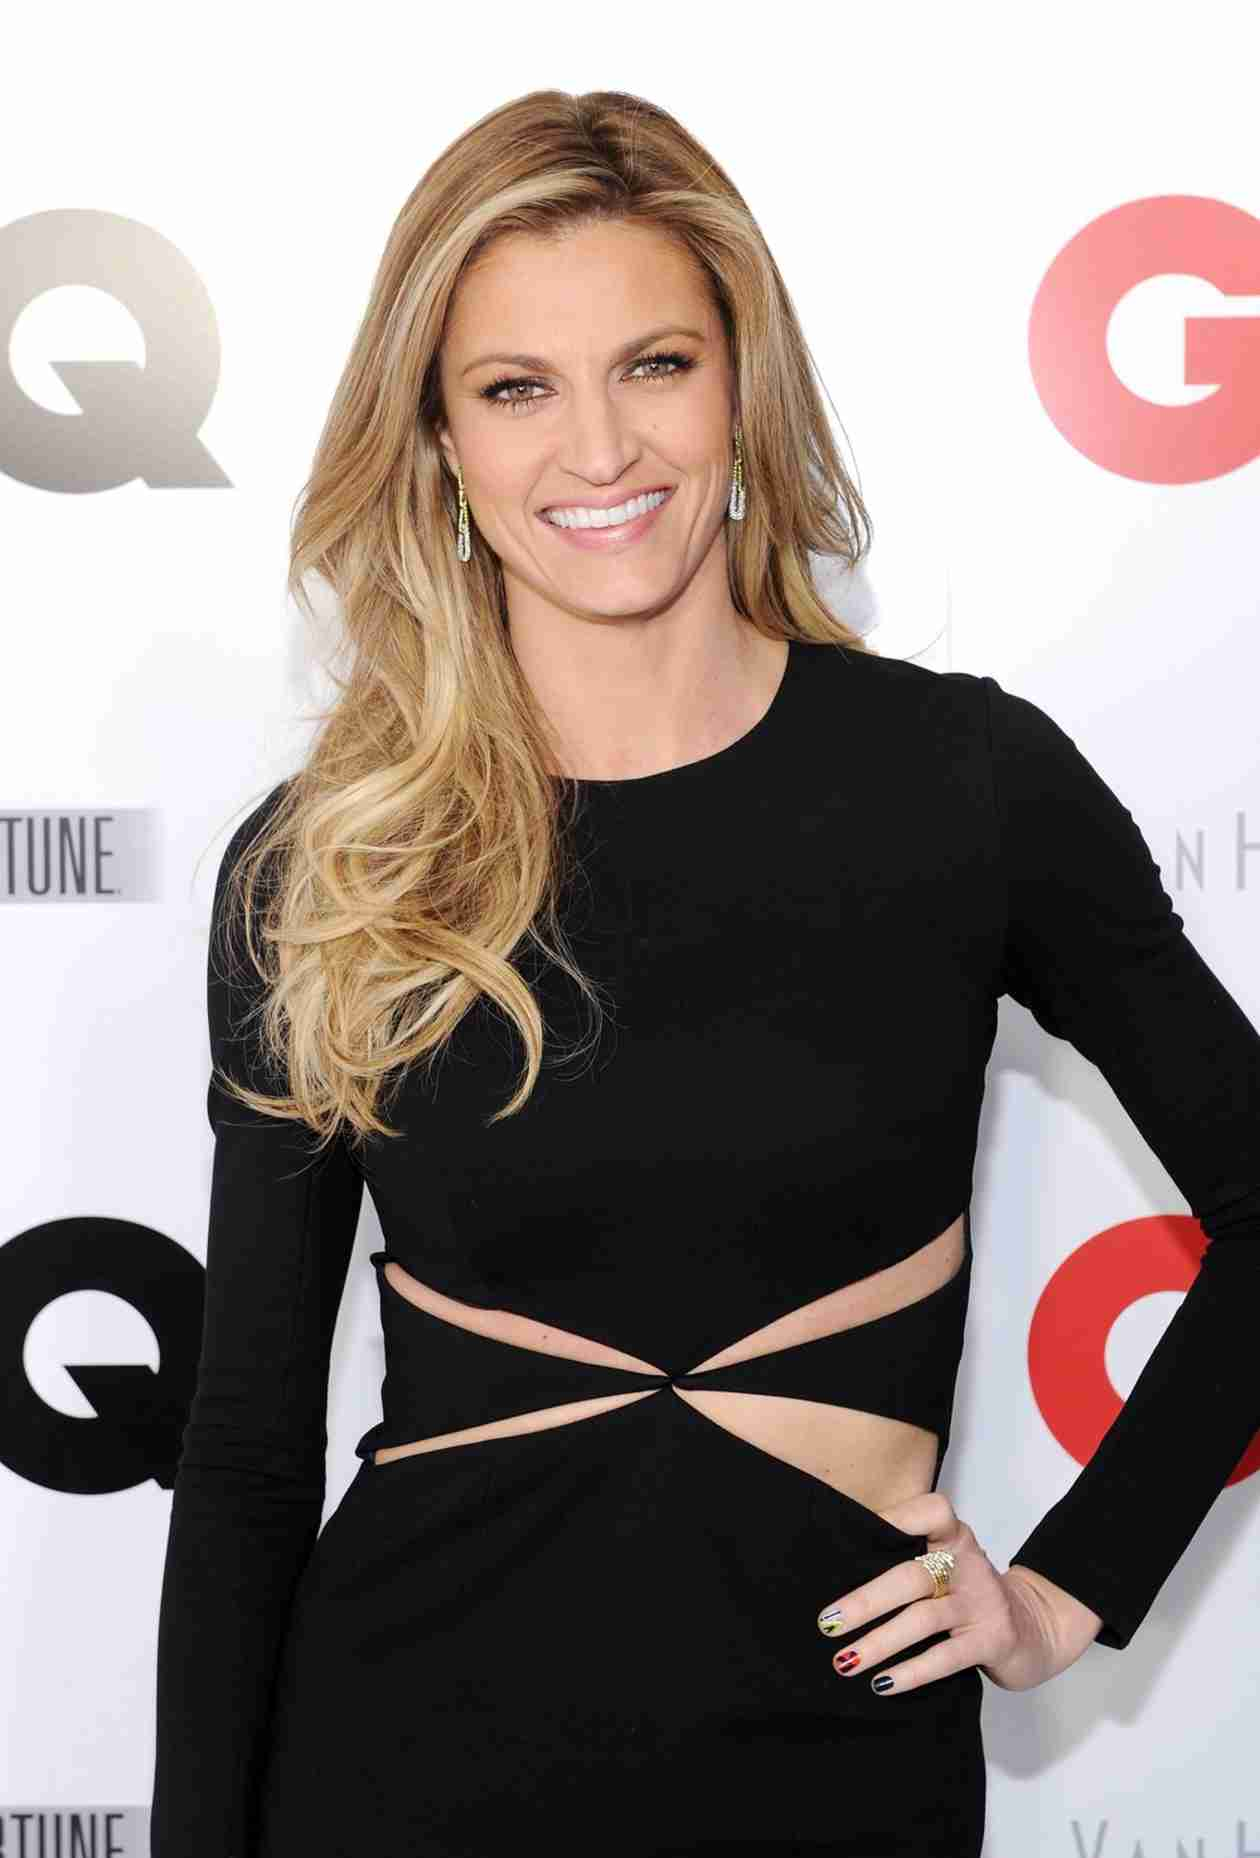 Dancing With the Stars 2014: Do You Like Erin Andrews as Host?